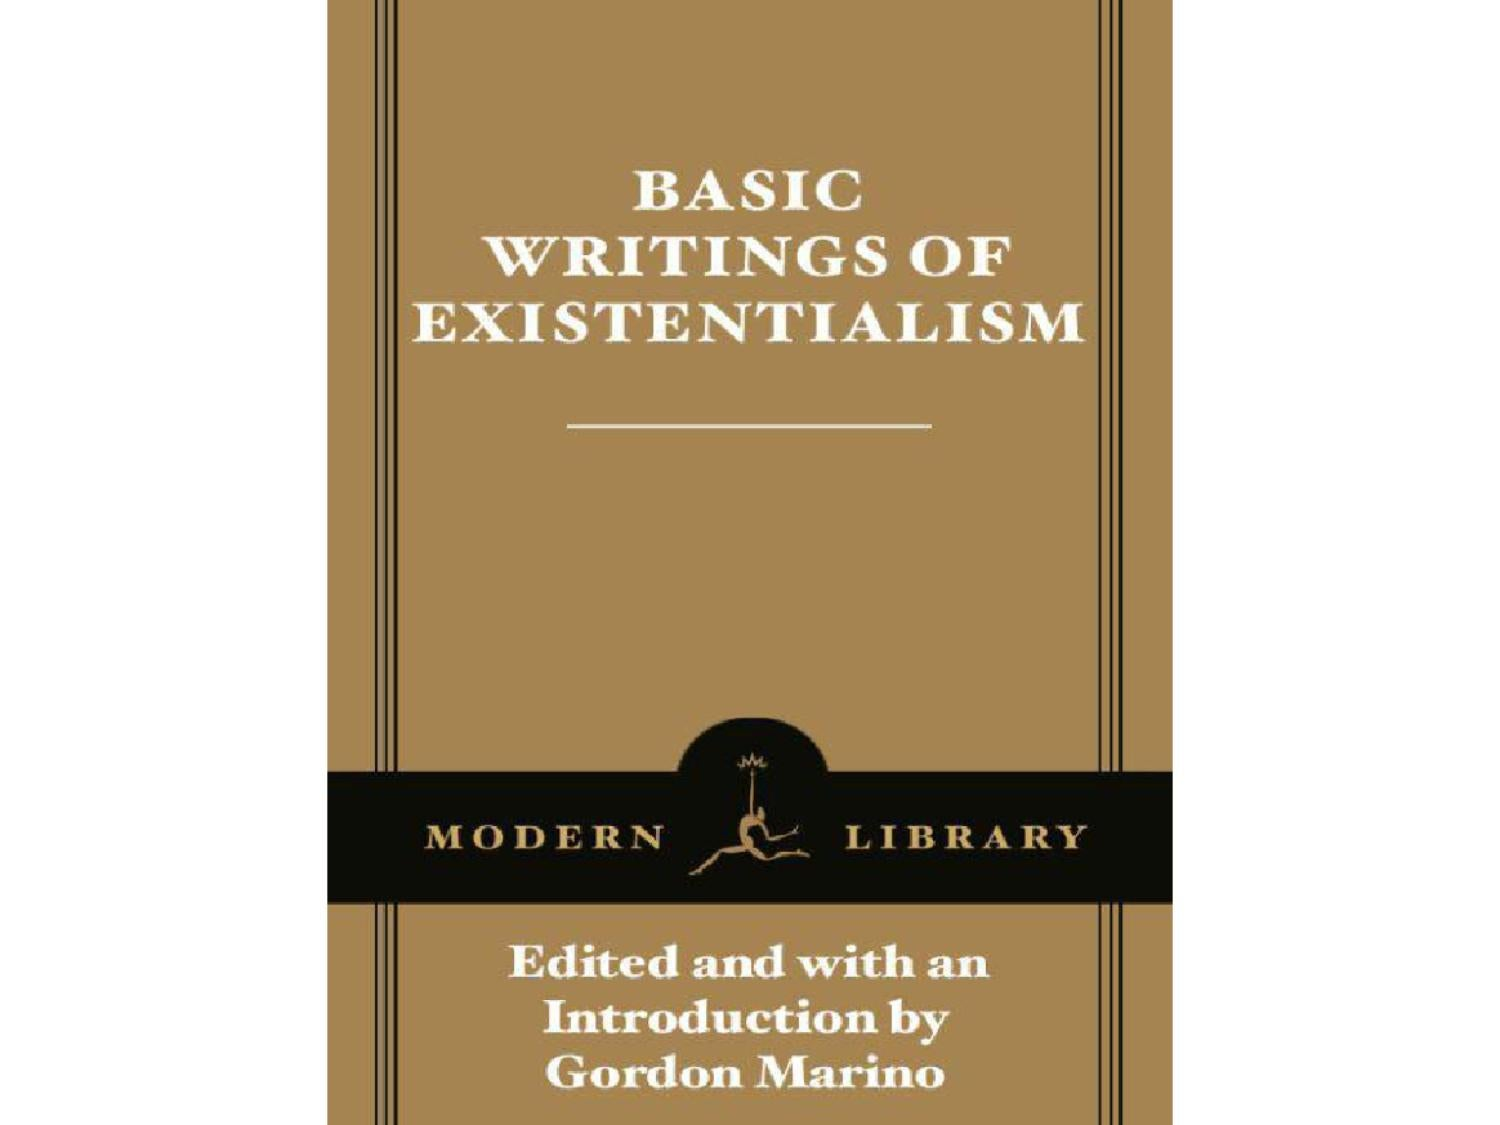 basic writings of existentialism modern marino gordon by mark basic writings of existentialism modern marino gordon by mark elmore issuu